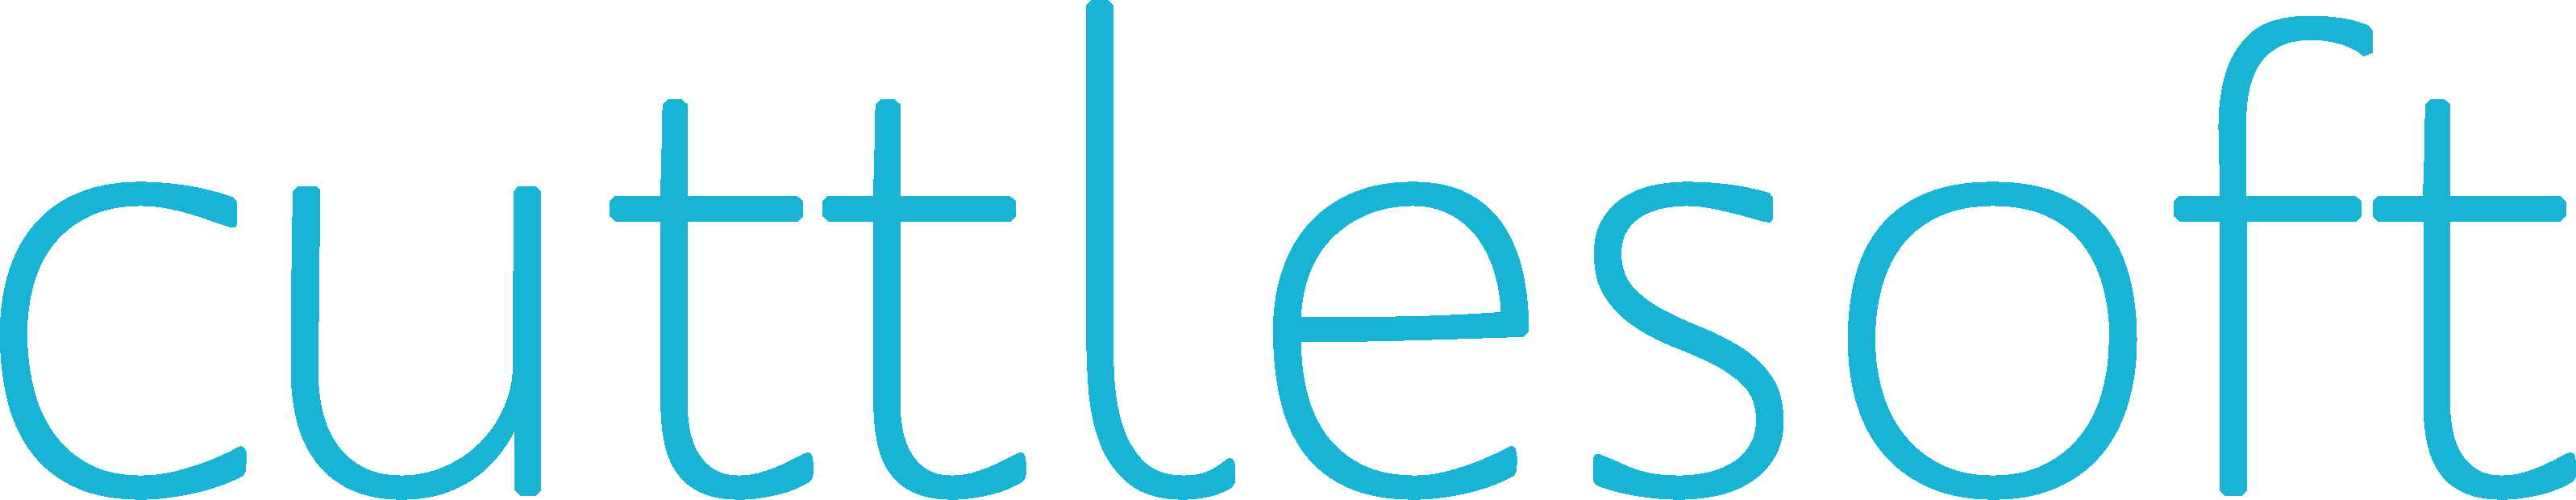 Cuttlesoft logo